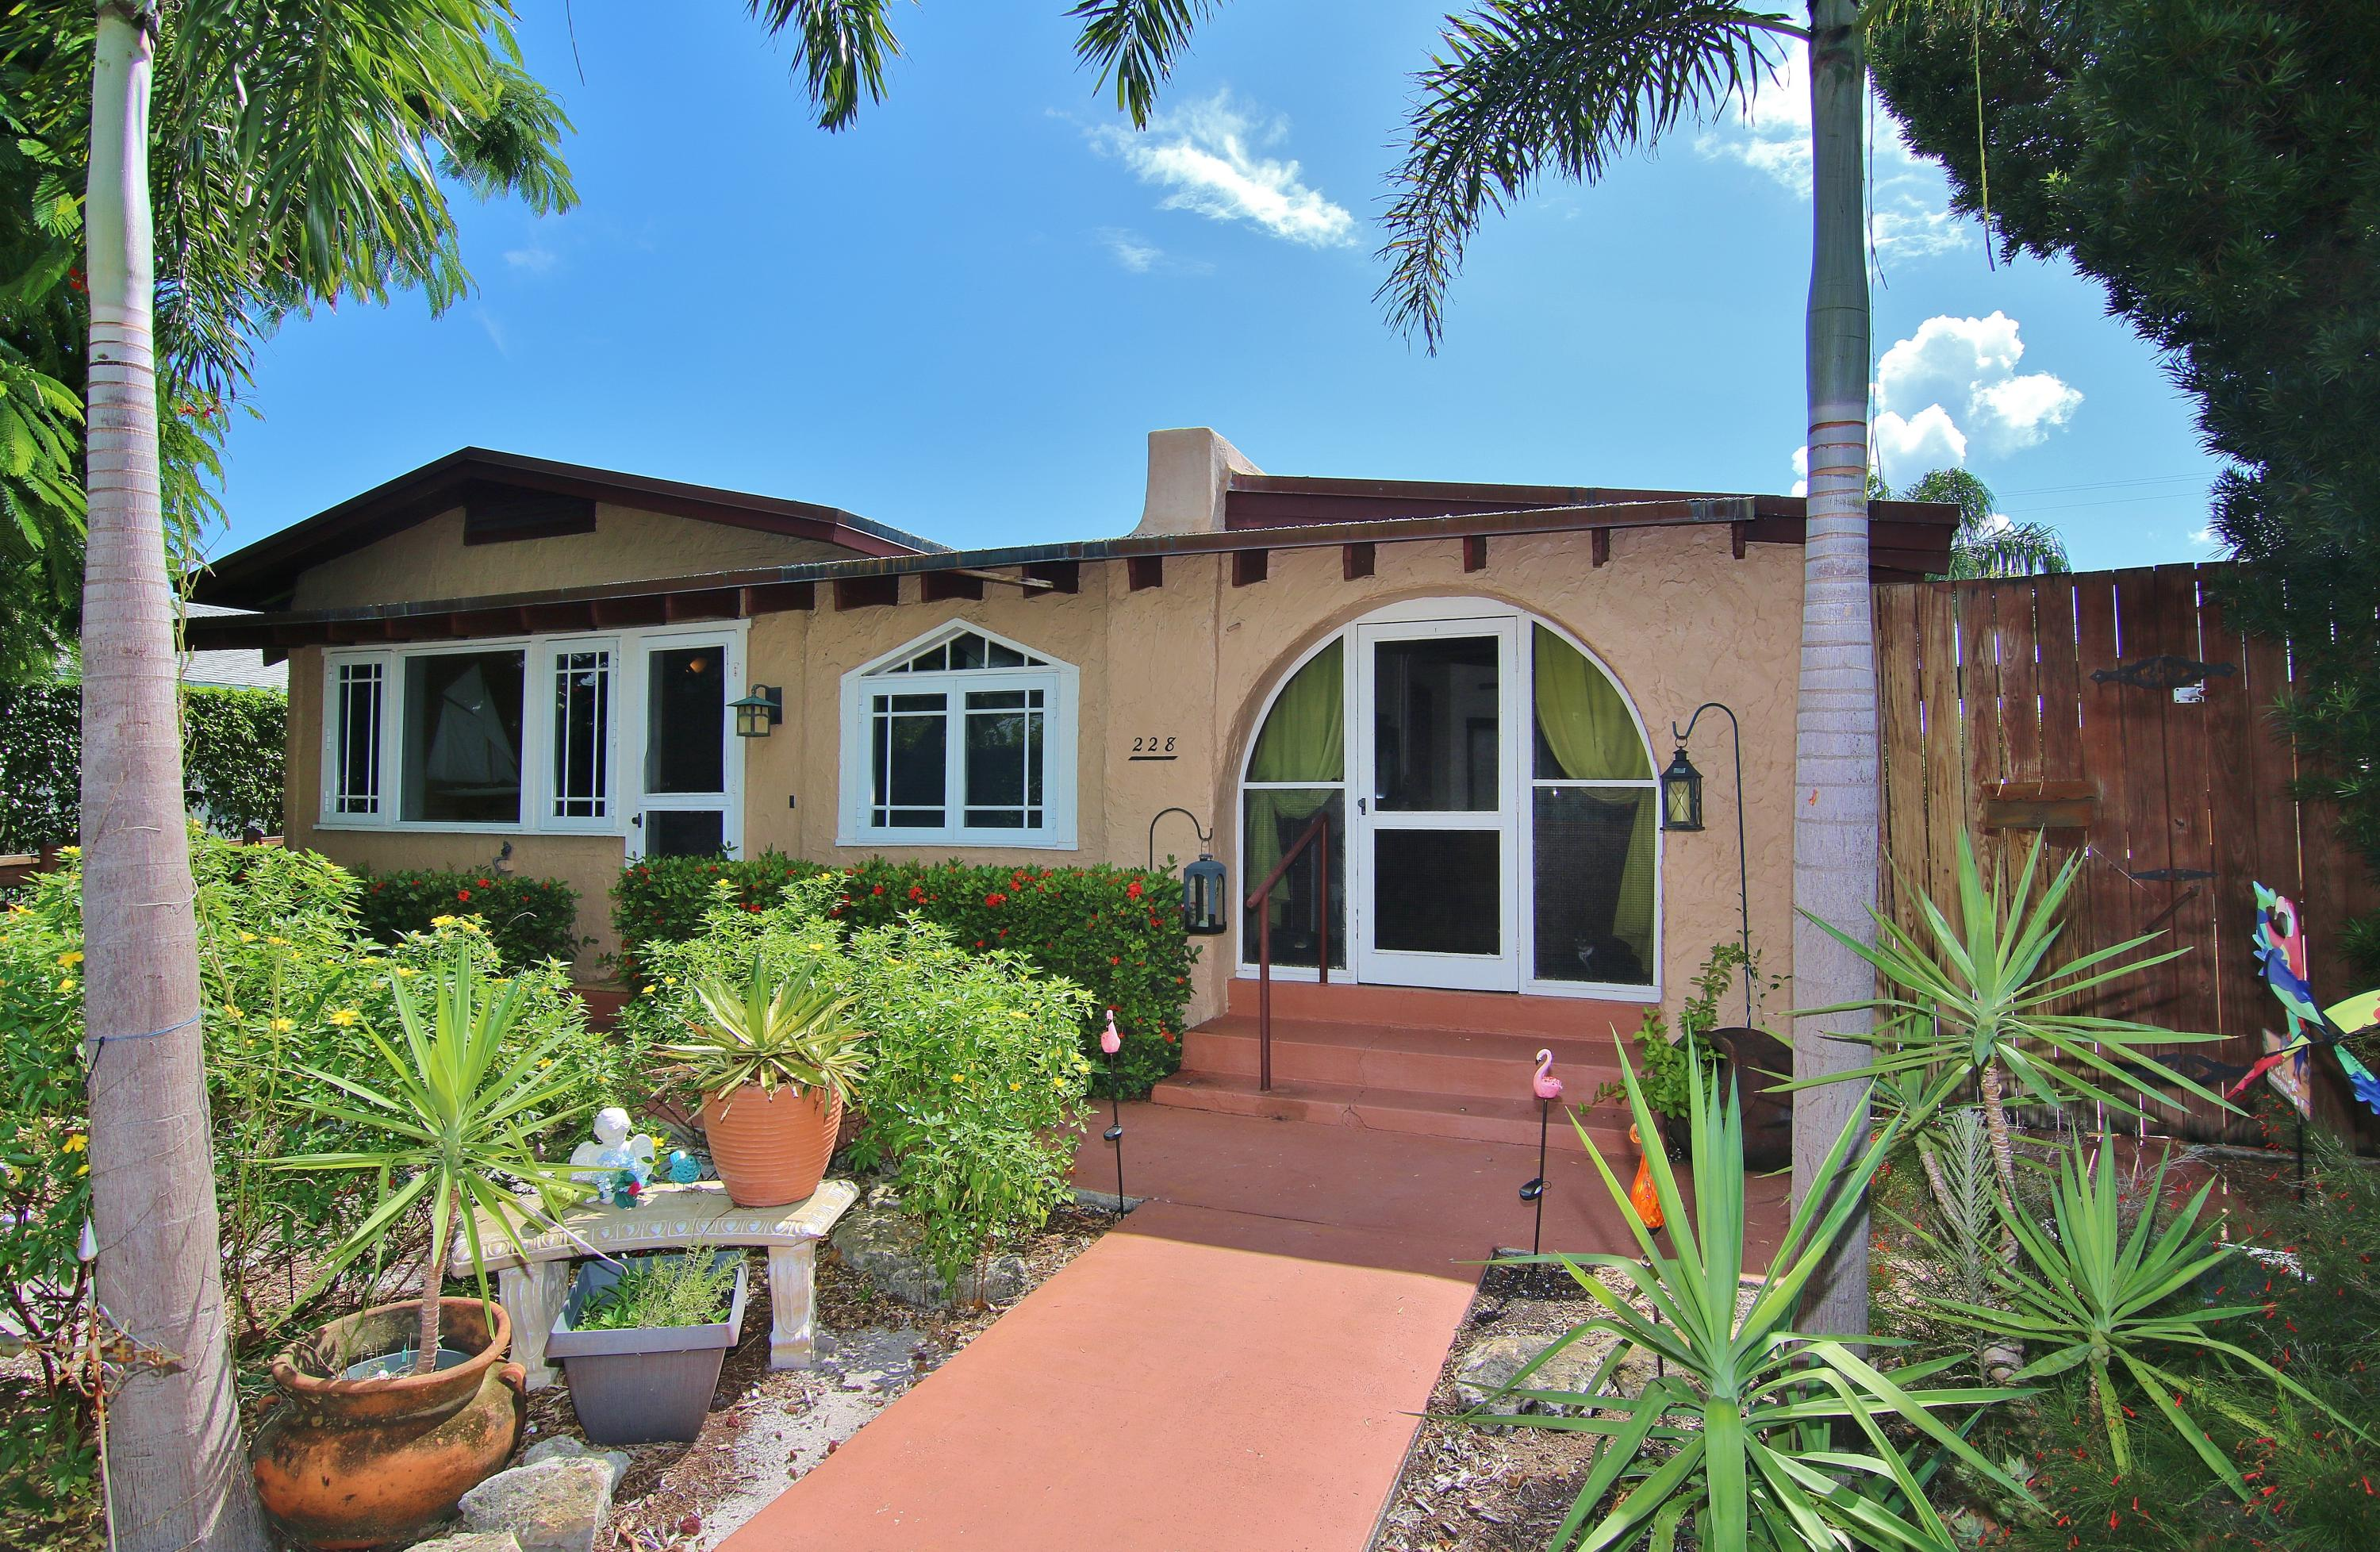 Home for sale in LAKE WORTH TOWN OF LT 2 BLK 97 Lake Worth Florida